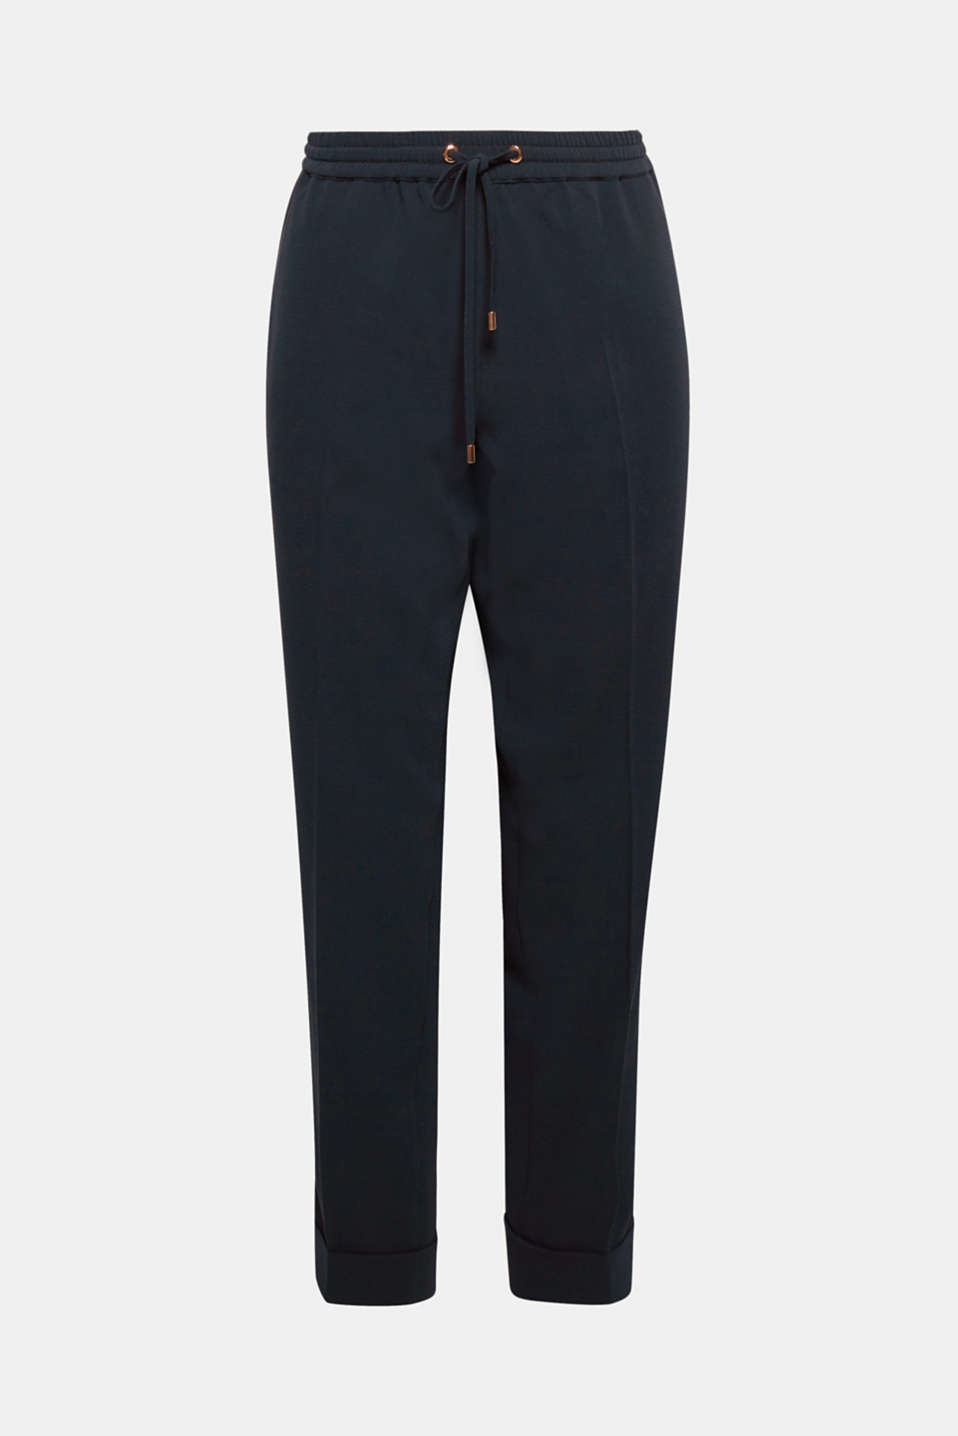 Combined with a blouse for a chic look or sporty and laid-back with trainers, this loosely draped crêpe trousers are particularly easy to mix and match.